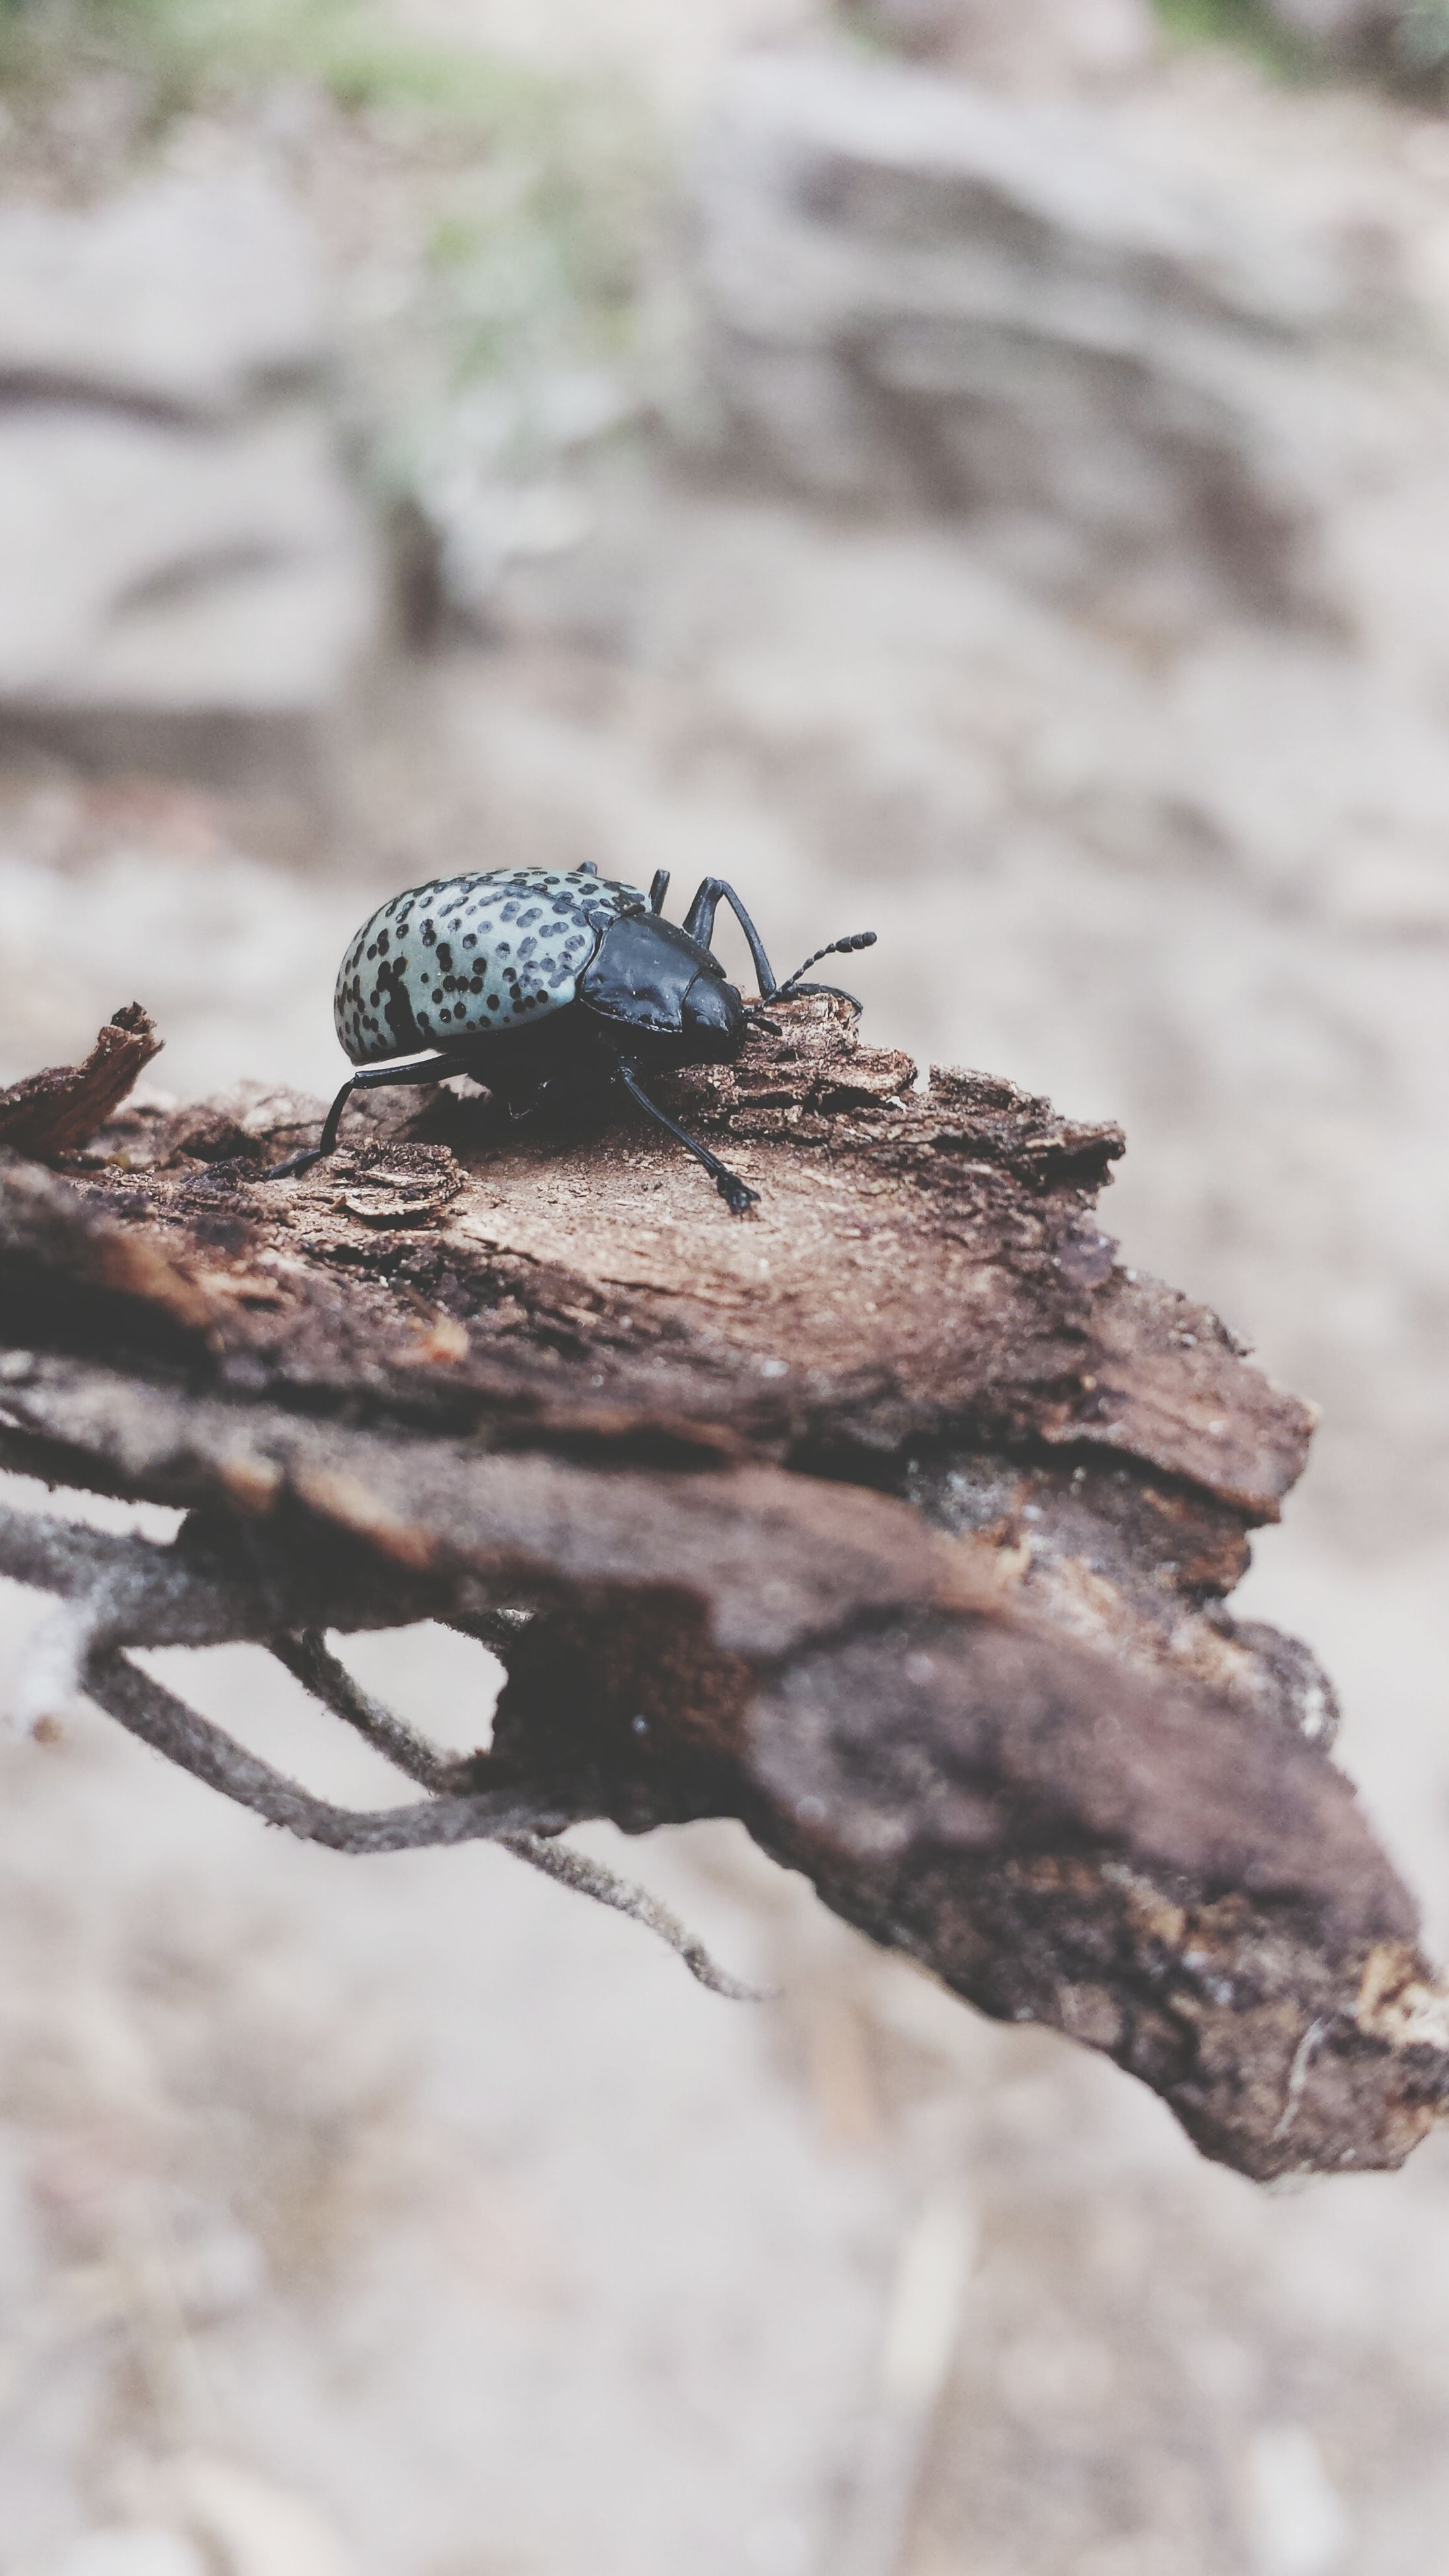 close-up, focus on foreground, one animal, nature, animal themes, natural pattern, animals in the wild, insect, selective focus, wildlife, outdoors, dry, day, fragility, no people, beauty in nature, brown, textured, rock - object, dead plant